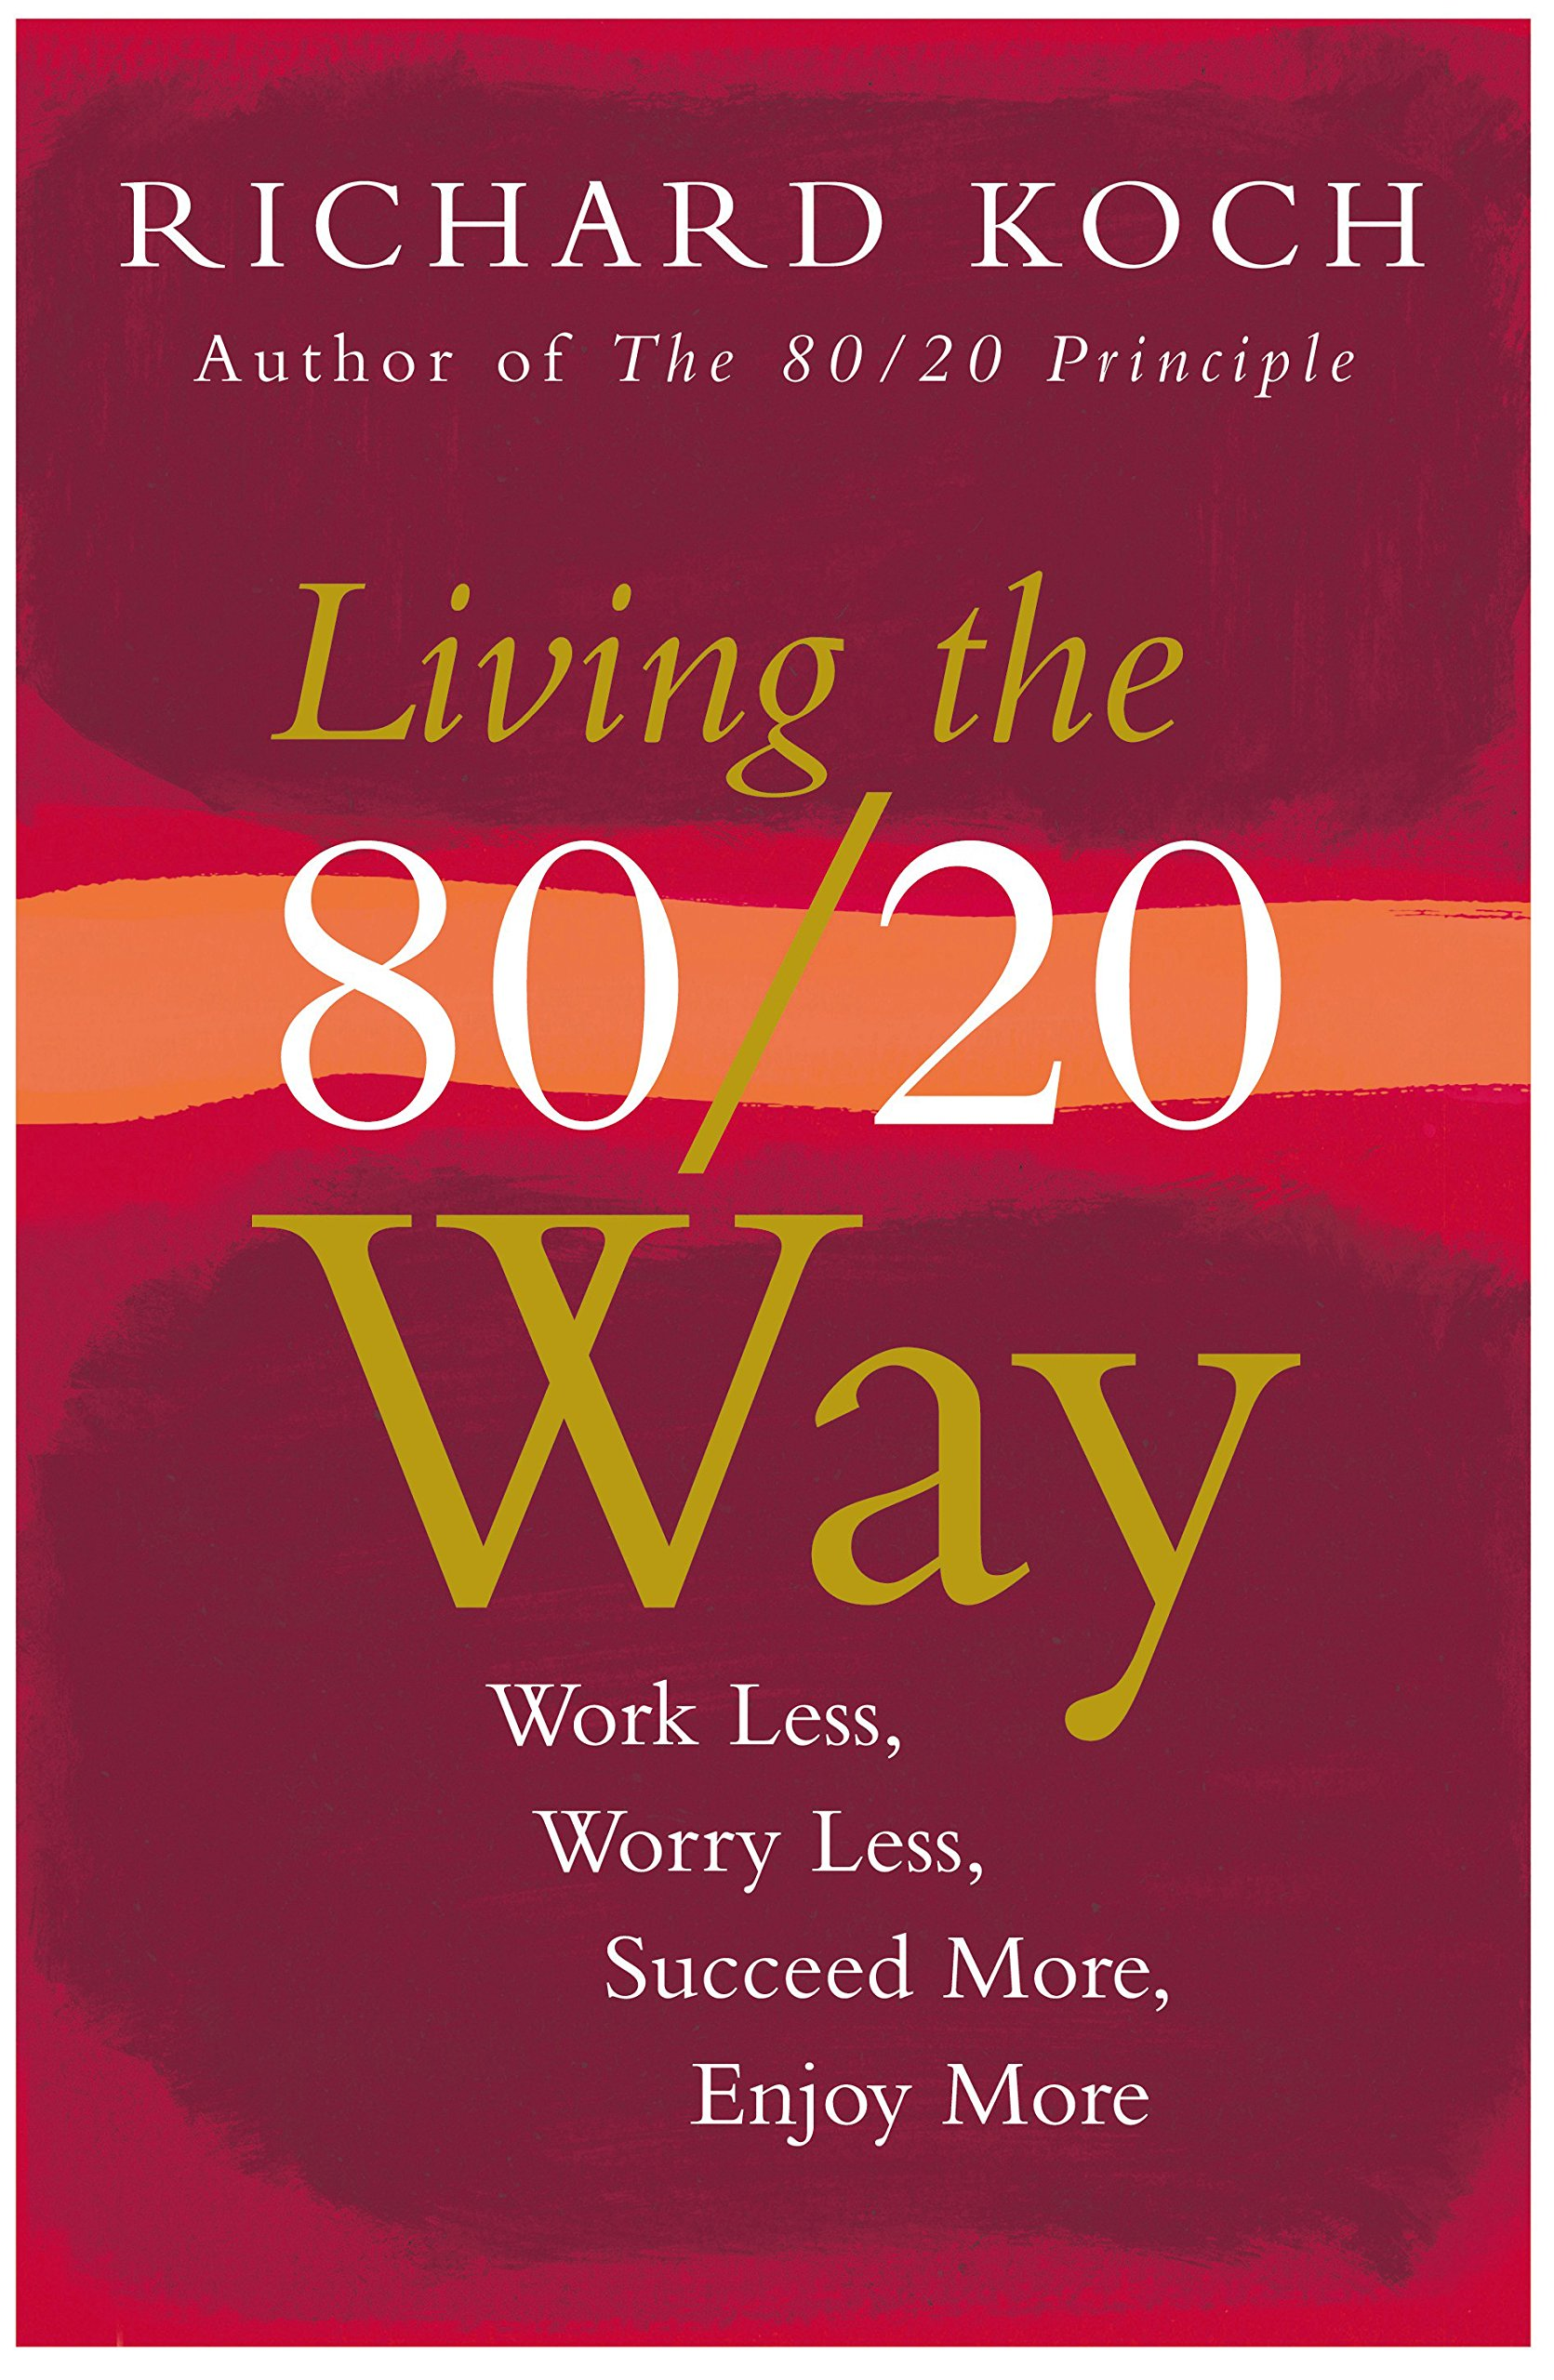 Download Living The 80/20 Way: Work Less, Worry Less, Succeed More, Enjoy More pdf